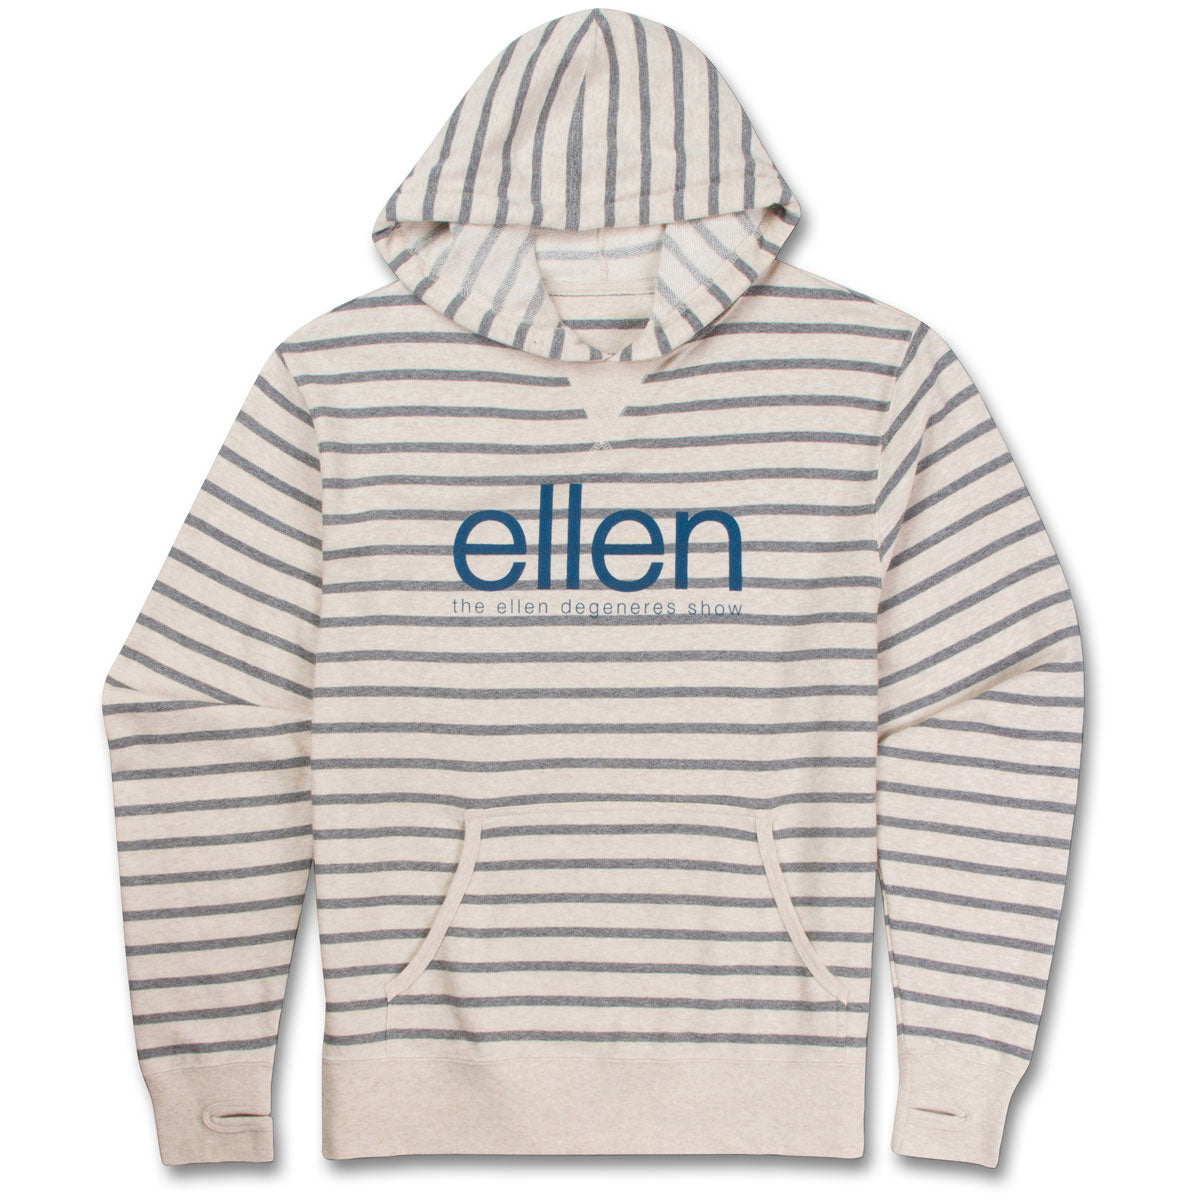 ellen Show Summer Pullover- Striped